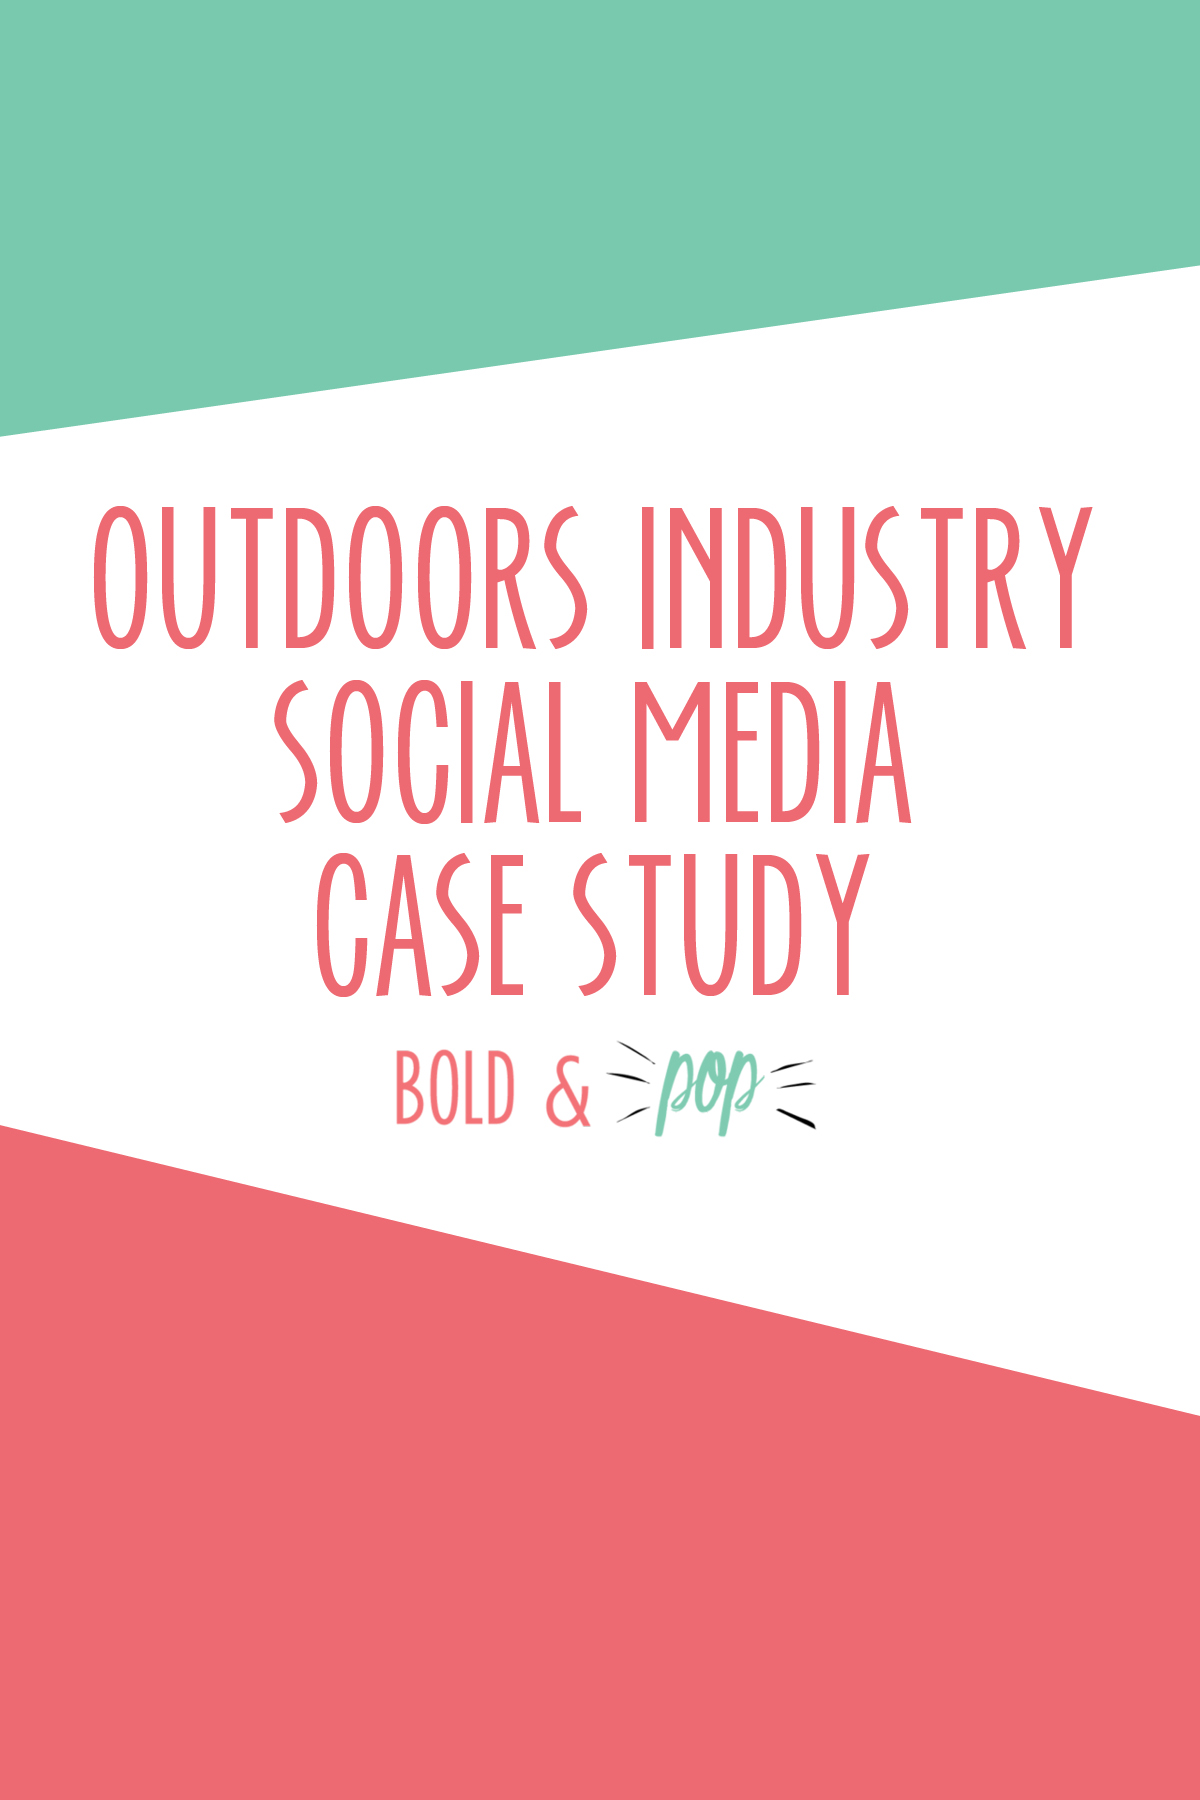 Bold & Pop : Outdoors Industry Social Media Case Study